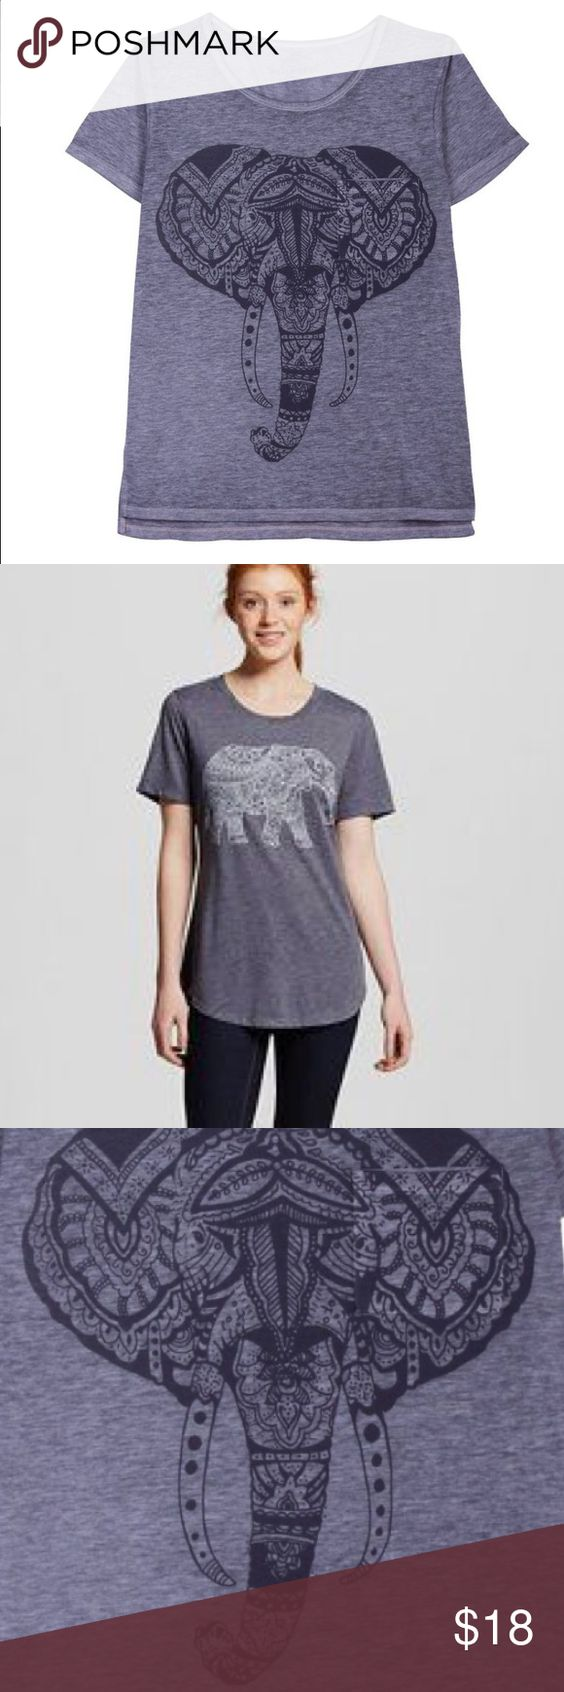 Elephant Graphic Tee - M Super soft grey top with light grey elephant pattern. Well Worn Los Angeles Tops Tees - Short Sleeve